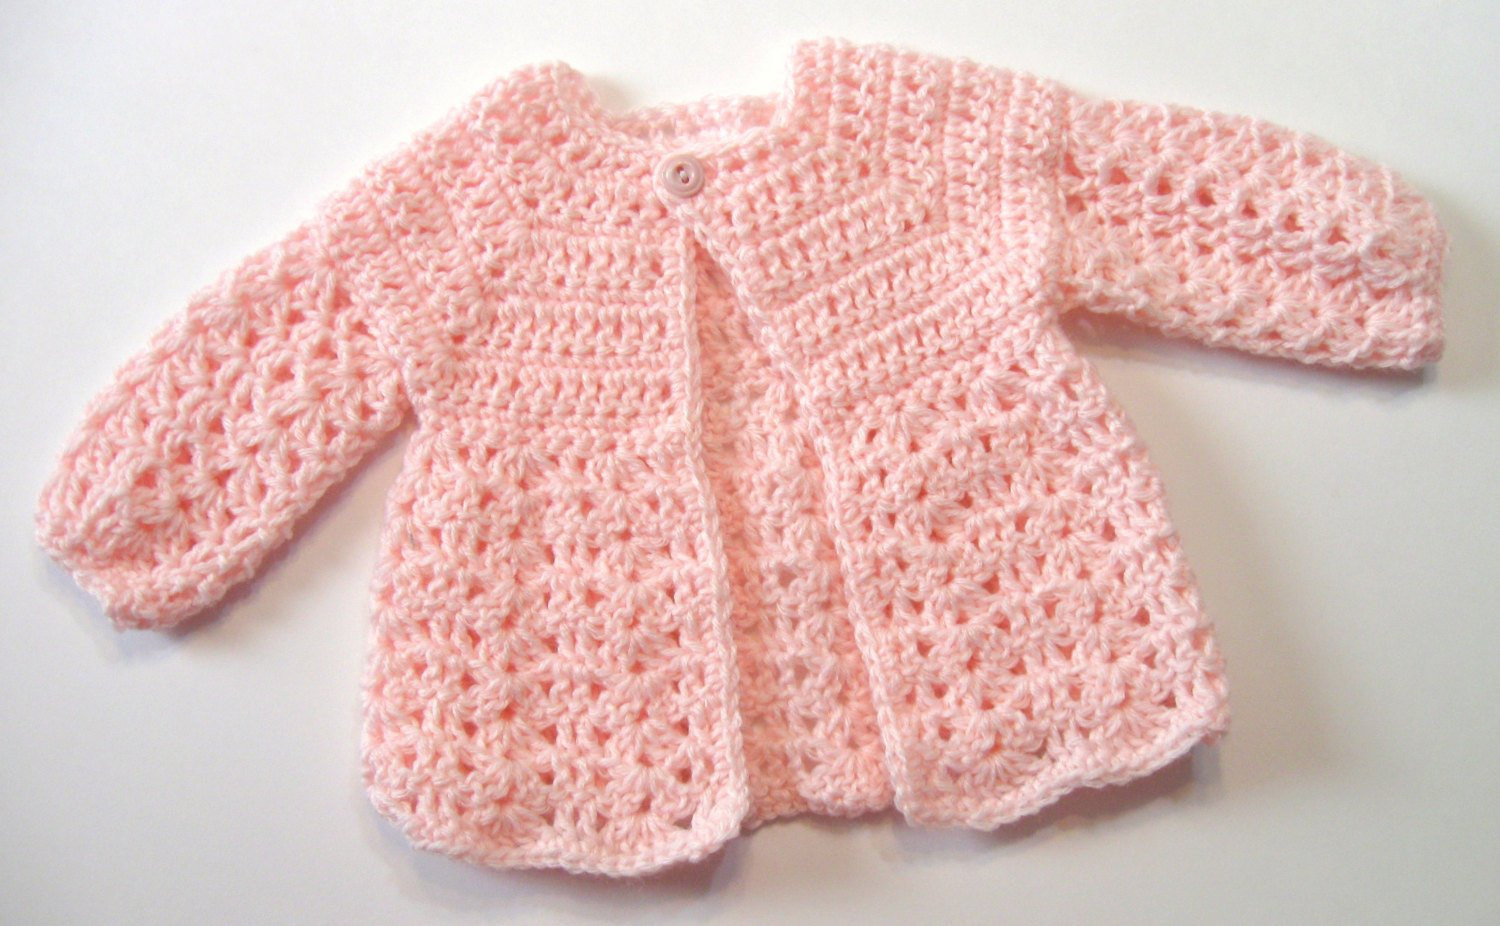 Easy Baby Sweater Crochet Pattern Best Of Crochet Pattern Baby Sweater Perfect for Girls Oma S Of Great 47 Photos Easy Baby Sweater Crochet Pattern